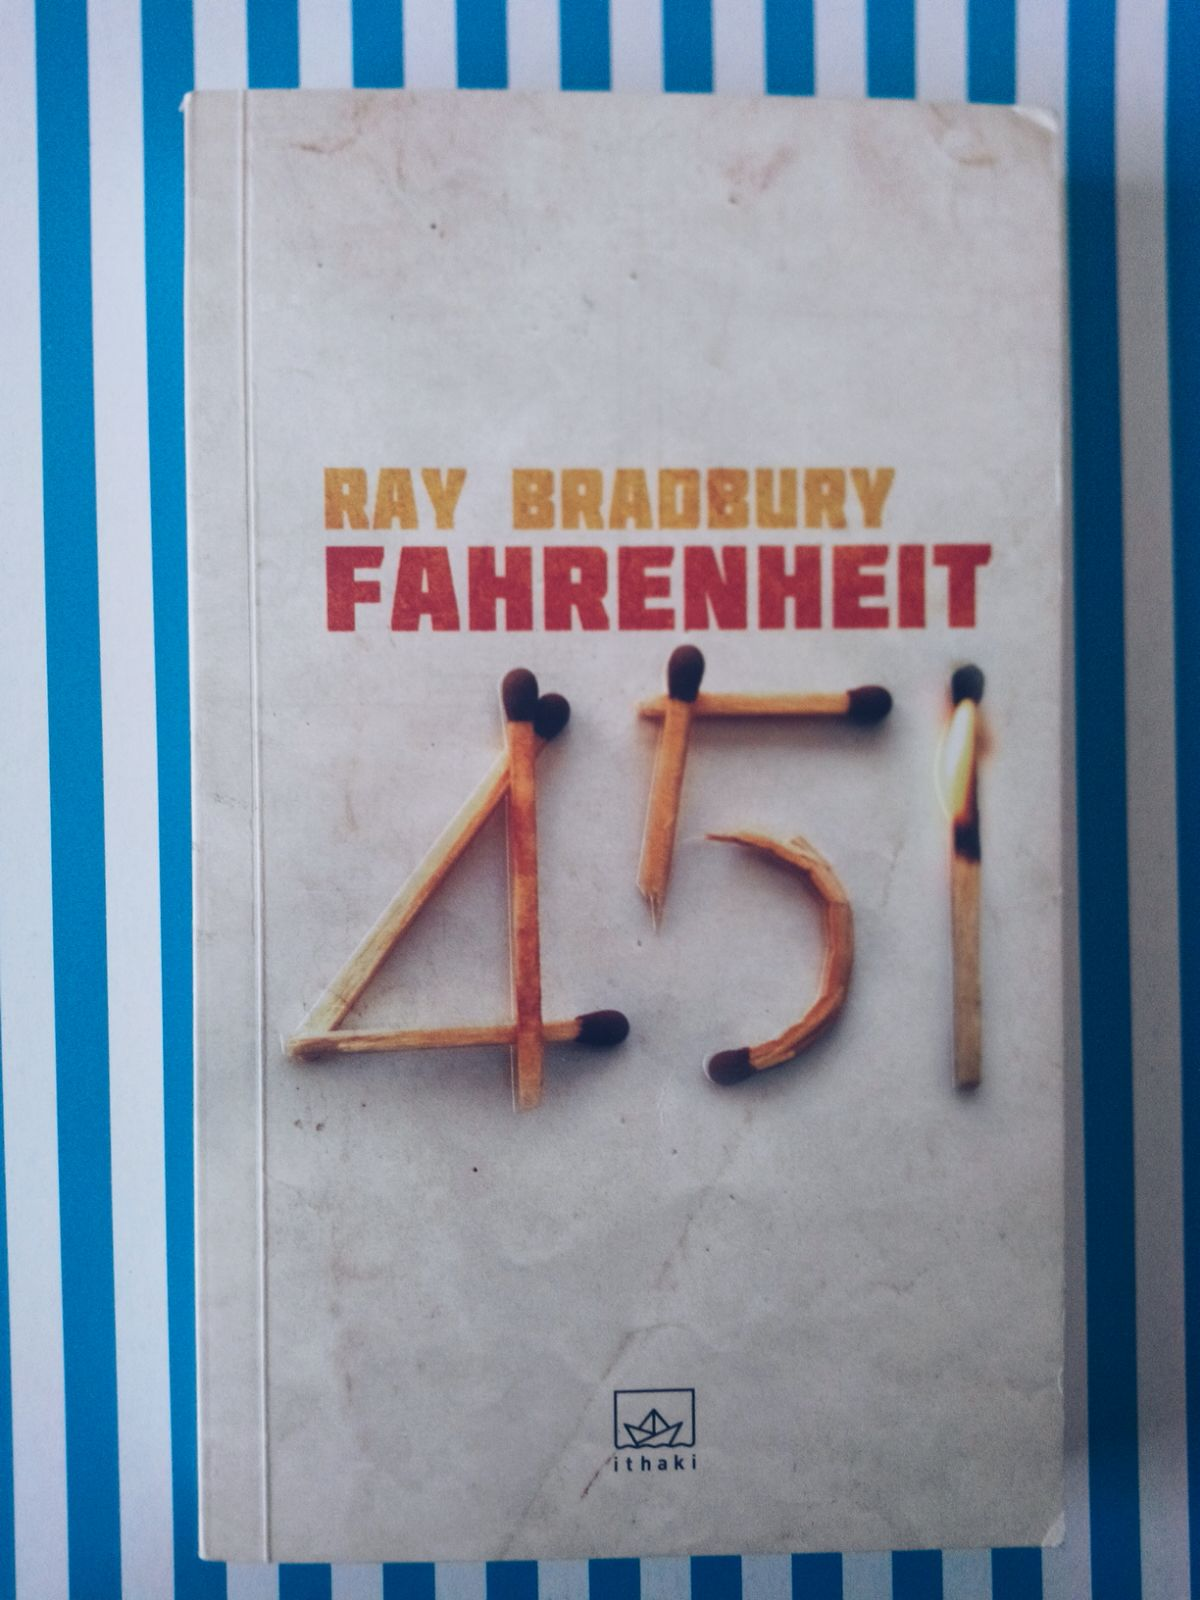 an analysis of the phoenix symbol in fahrenheit 451 by ray bradbury A reserve an analysis of the phoenix symbol in fahrenheit 451 by ray bradbury currency (or anchor currency) is a currency that is held in significant quantities by governments and institutions as part of their foreign exchange reserves.